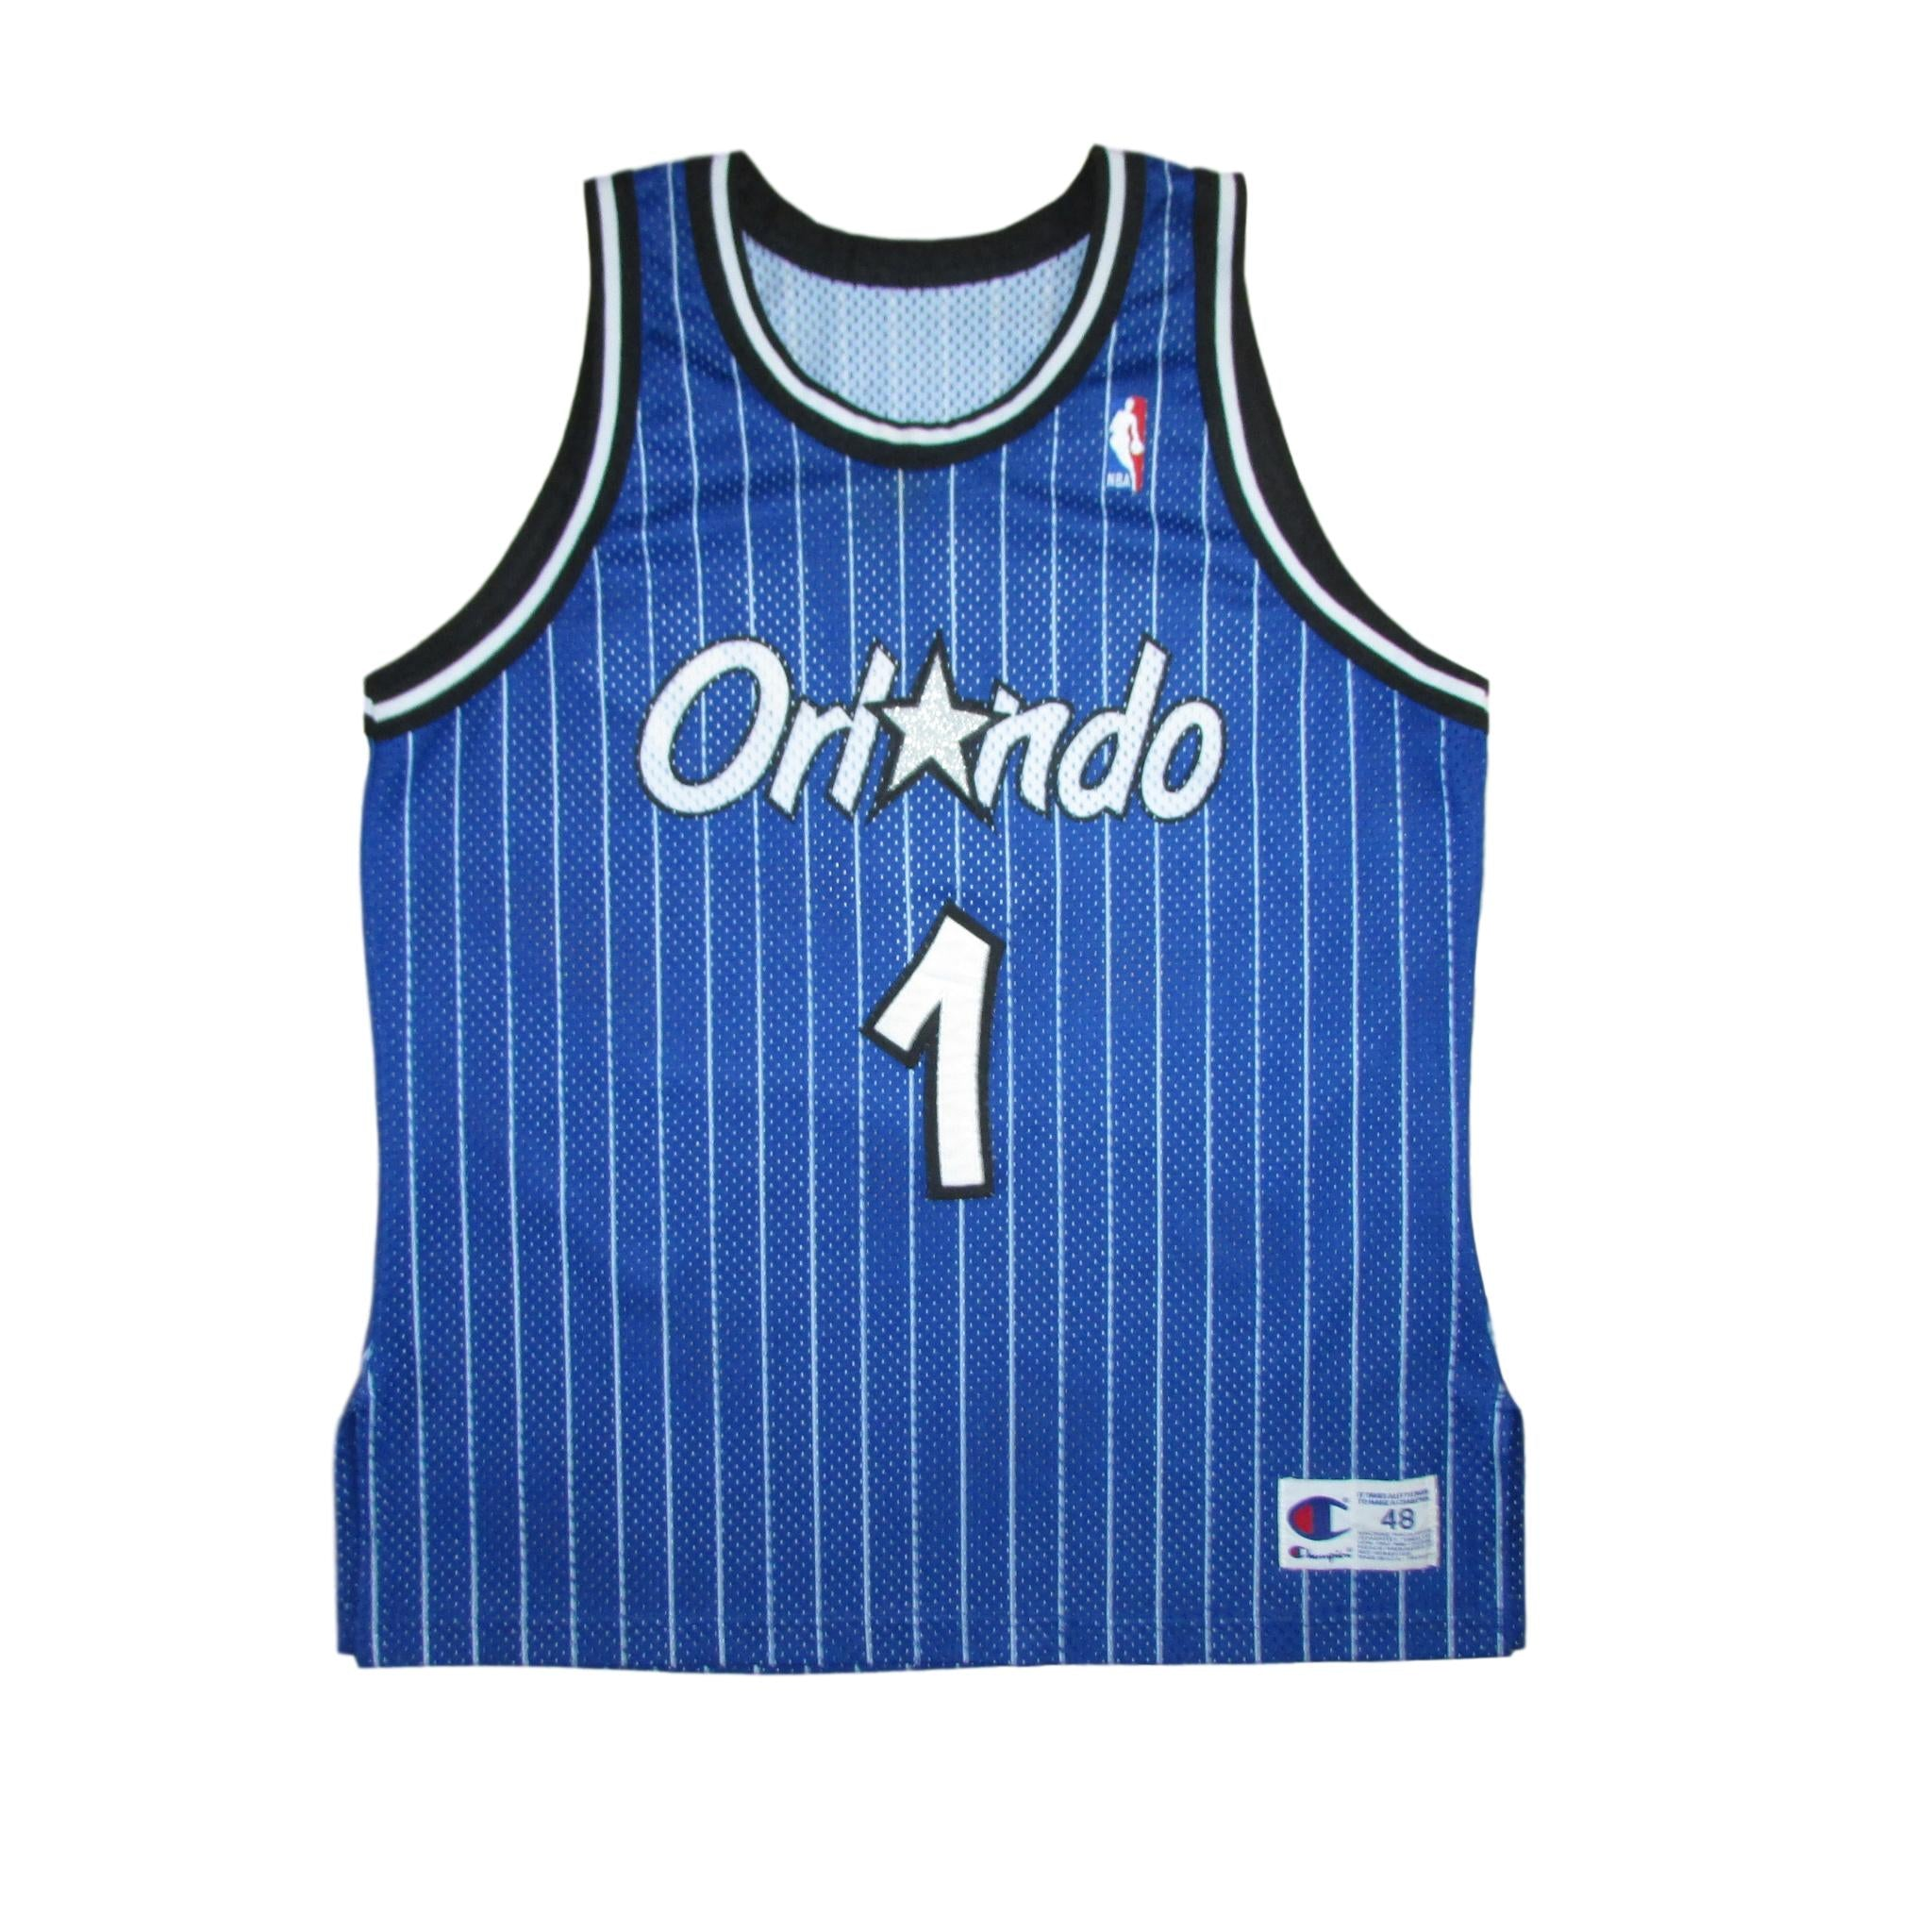 Orlando Magic Anfernee Hardaway Authentic Pinstripes Basketball Jersey Sz 48